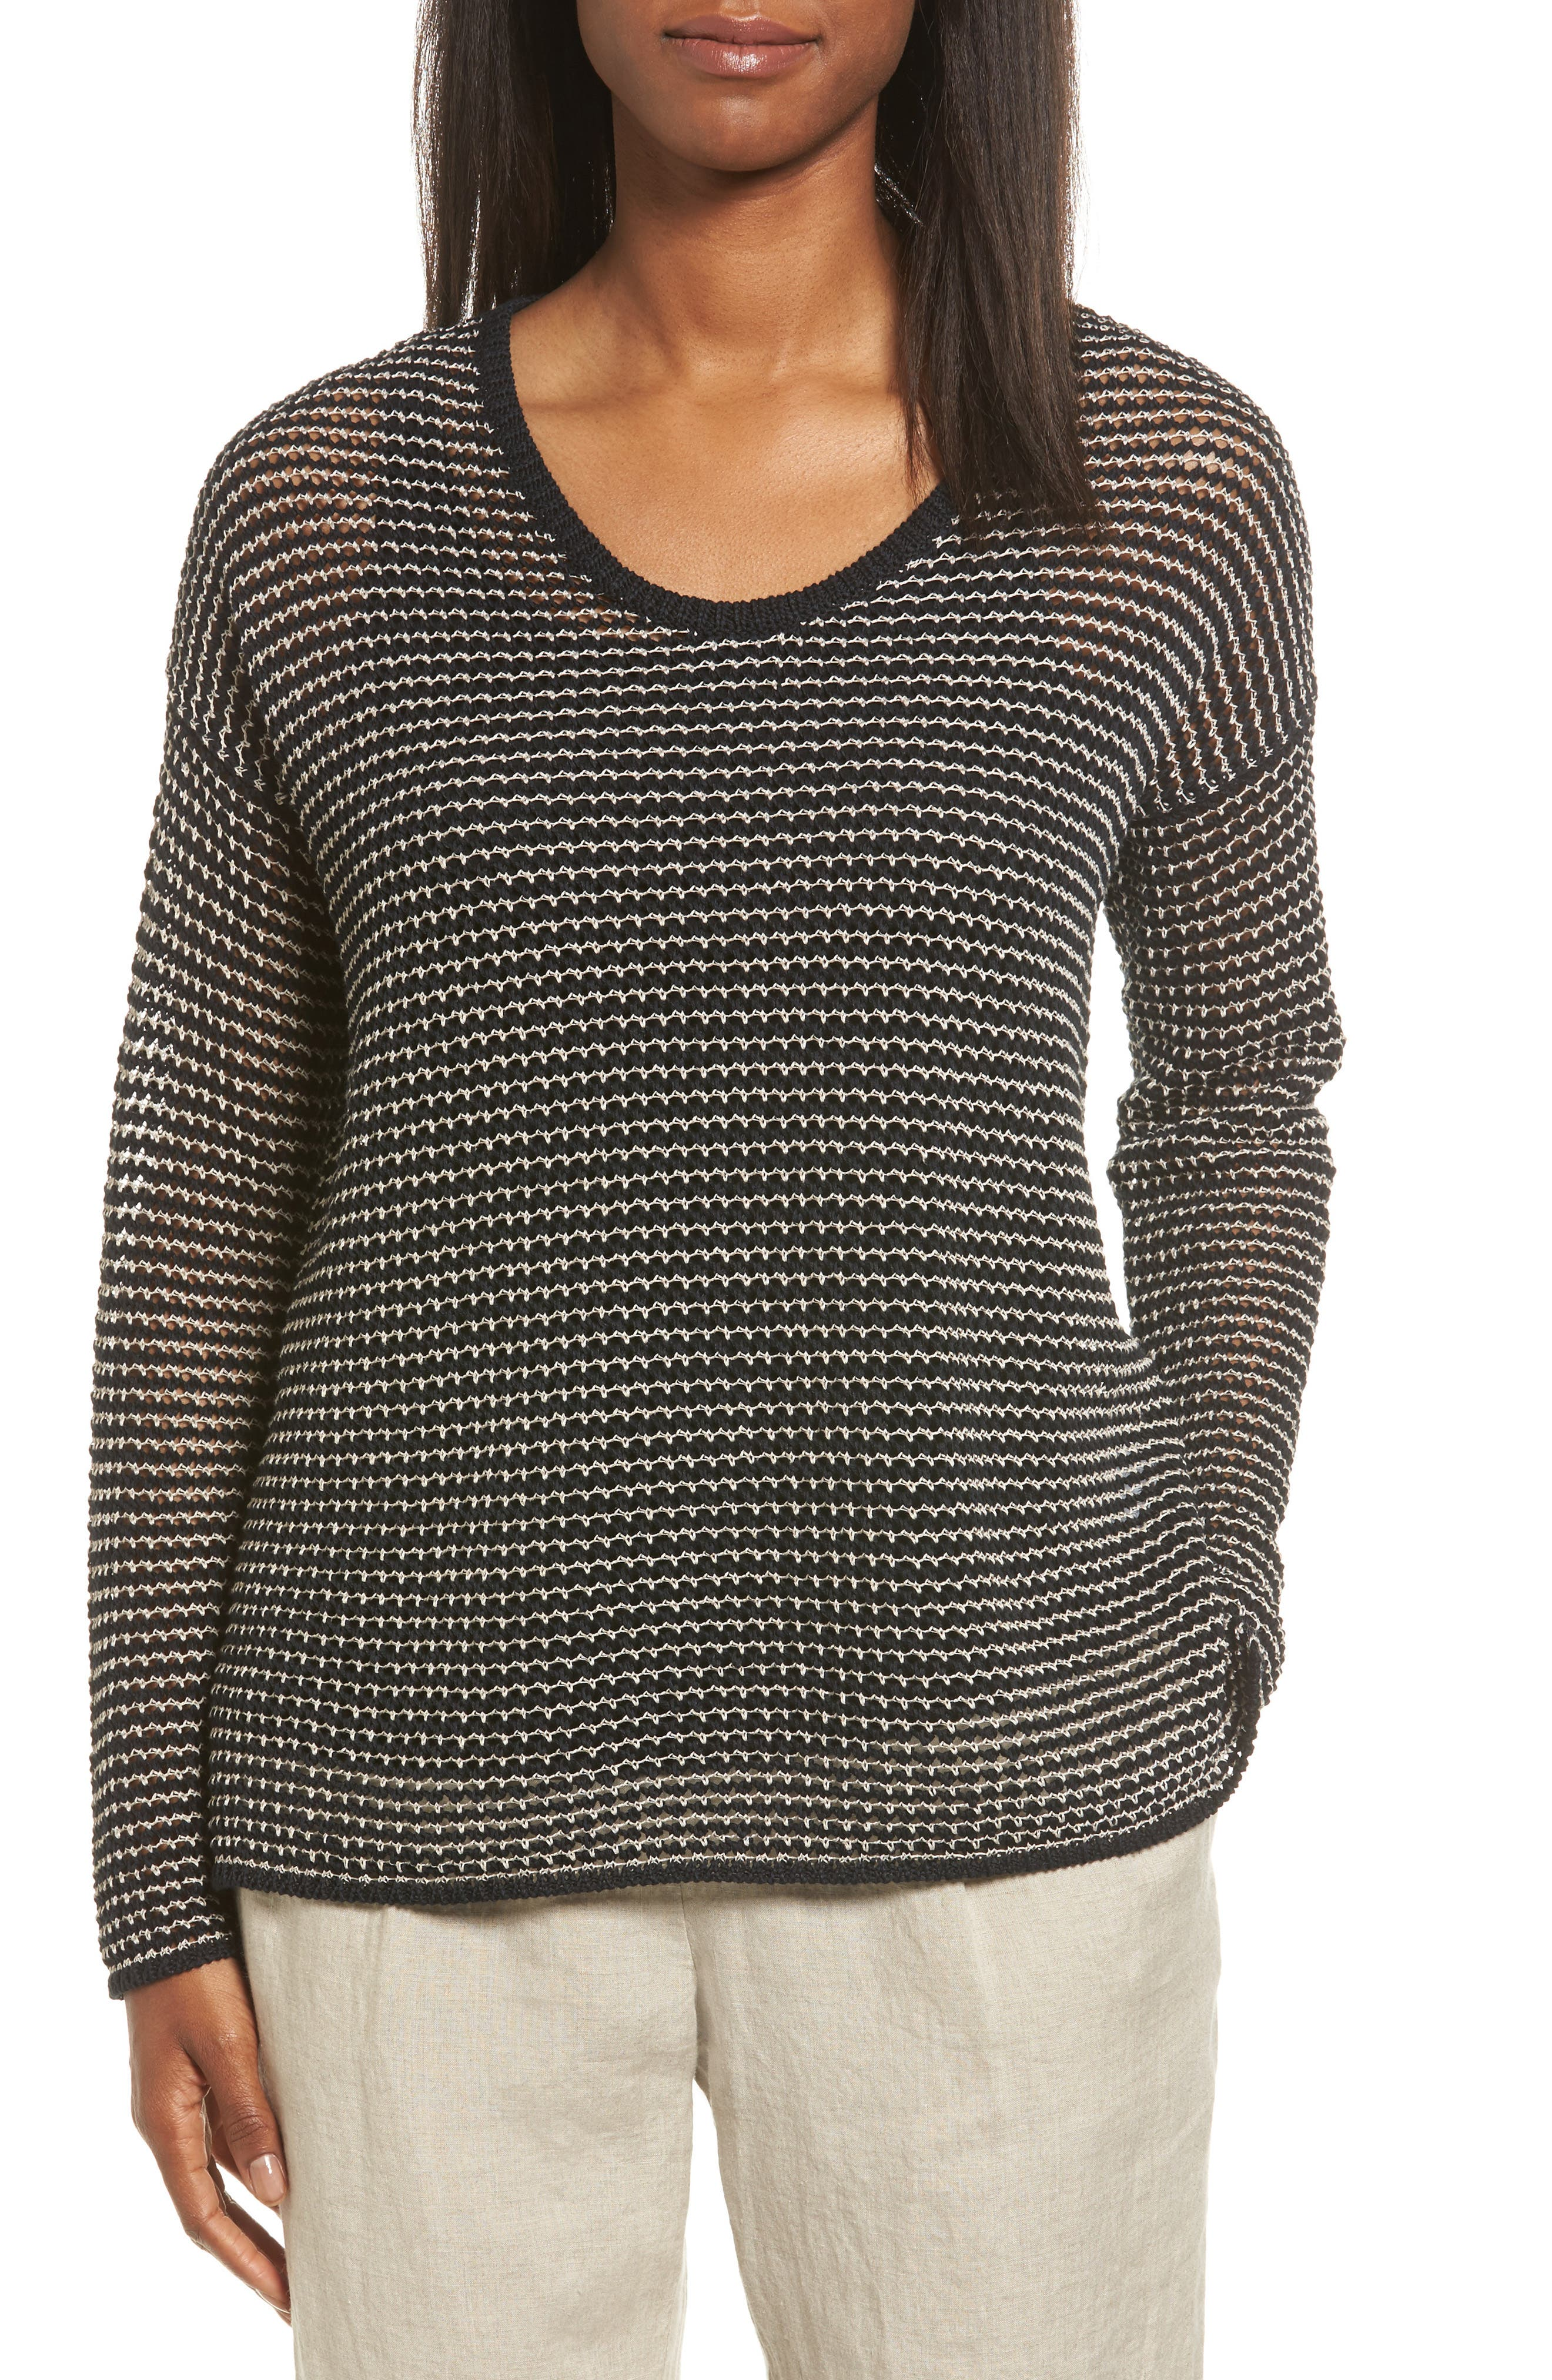 Eileen Fisher Organic Cotton Blend Two-Tone Sweater